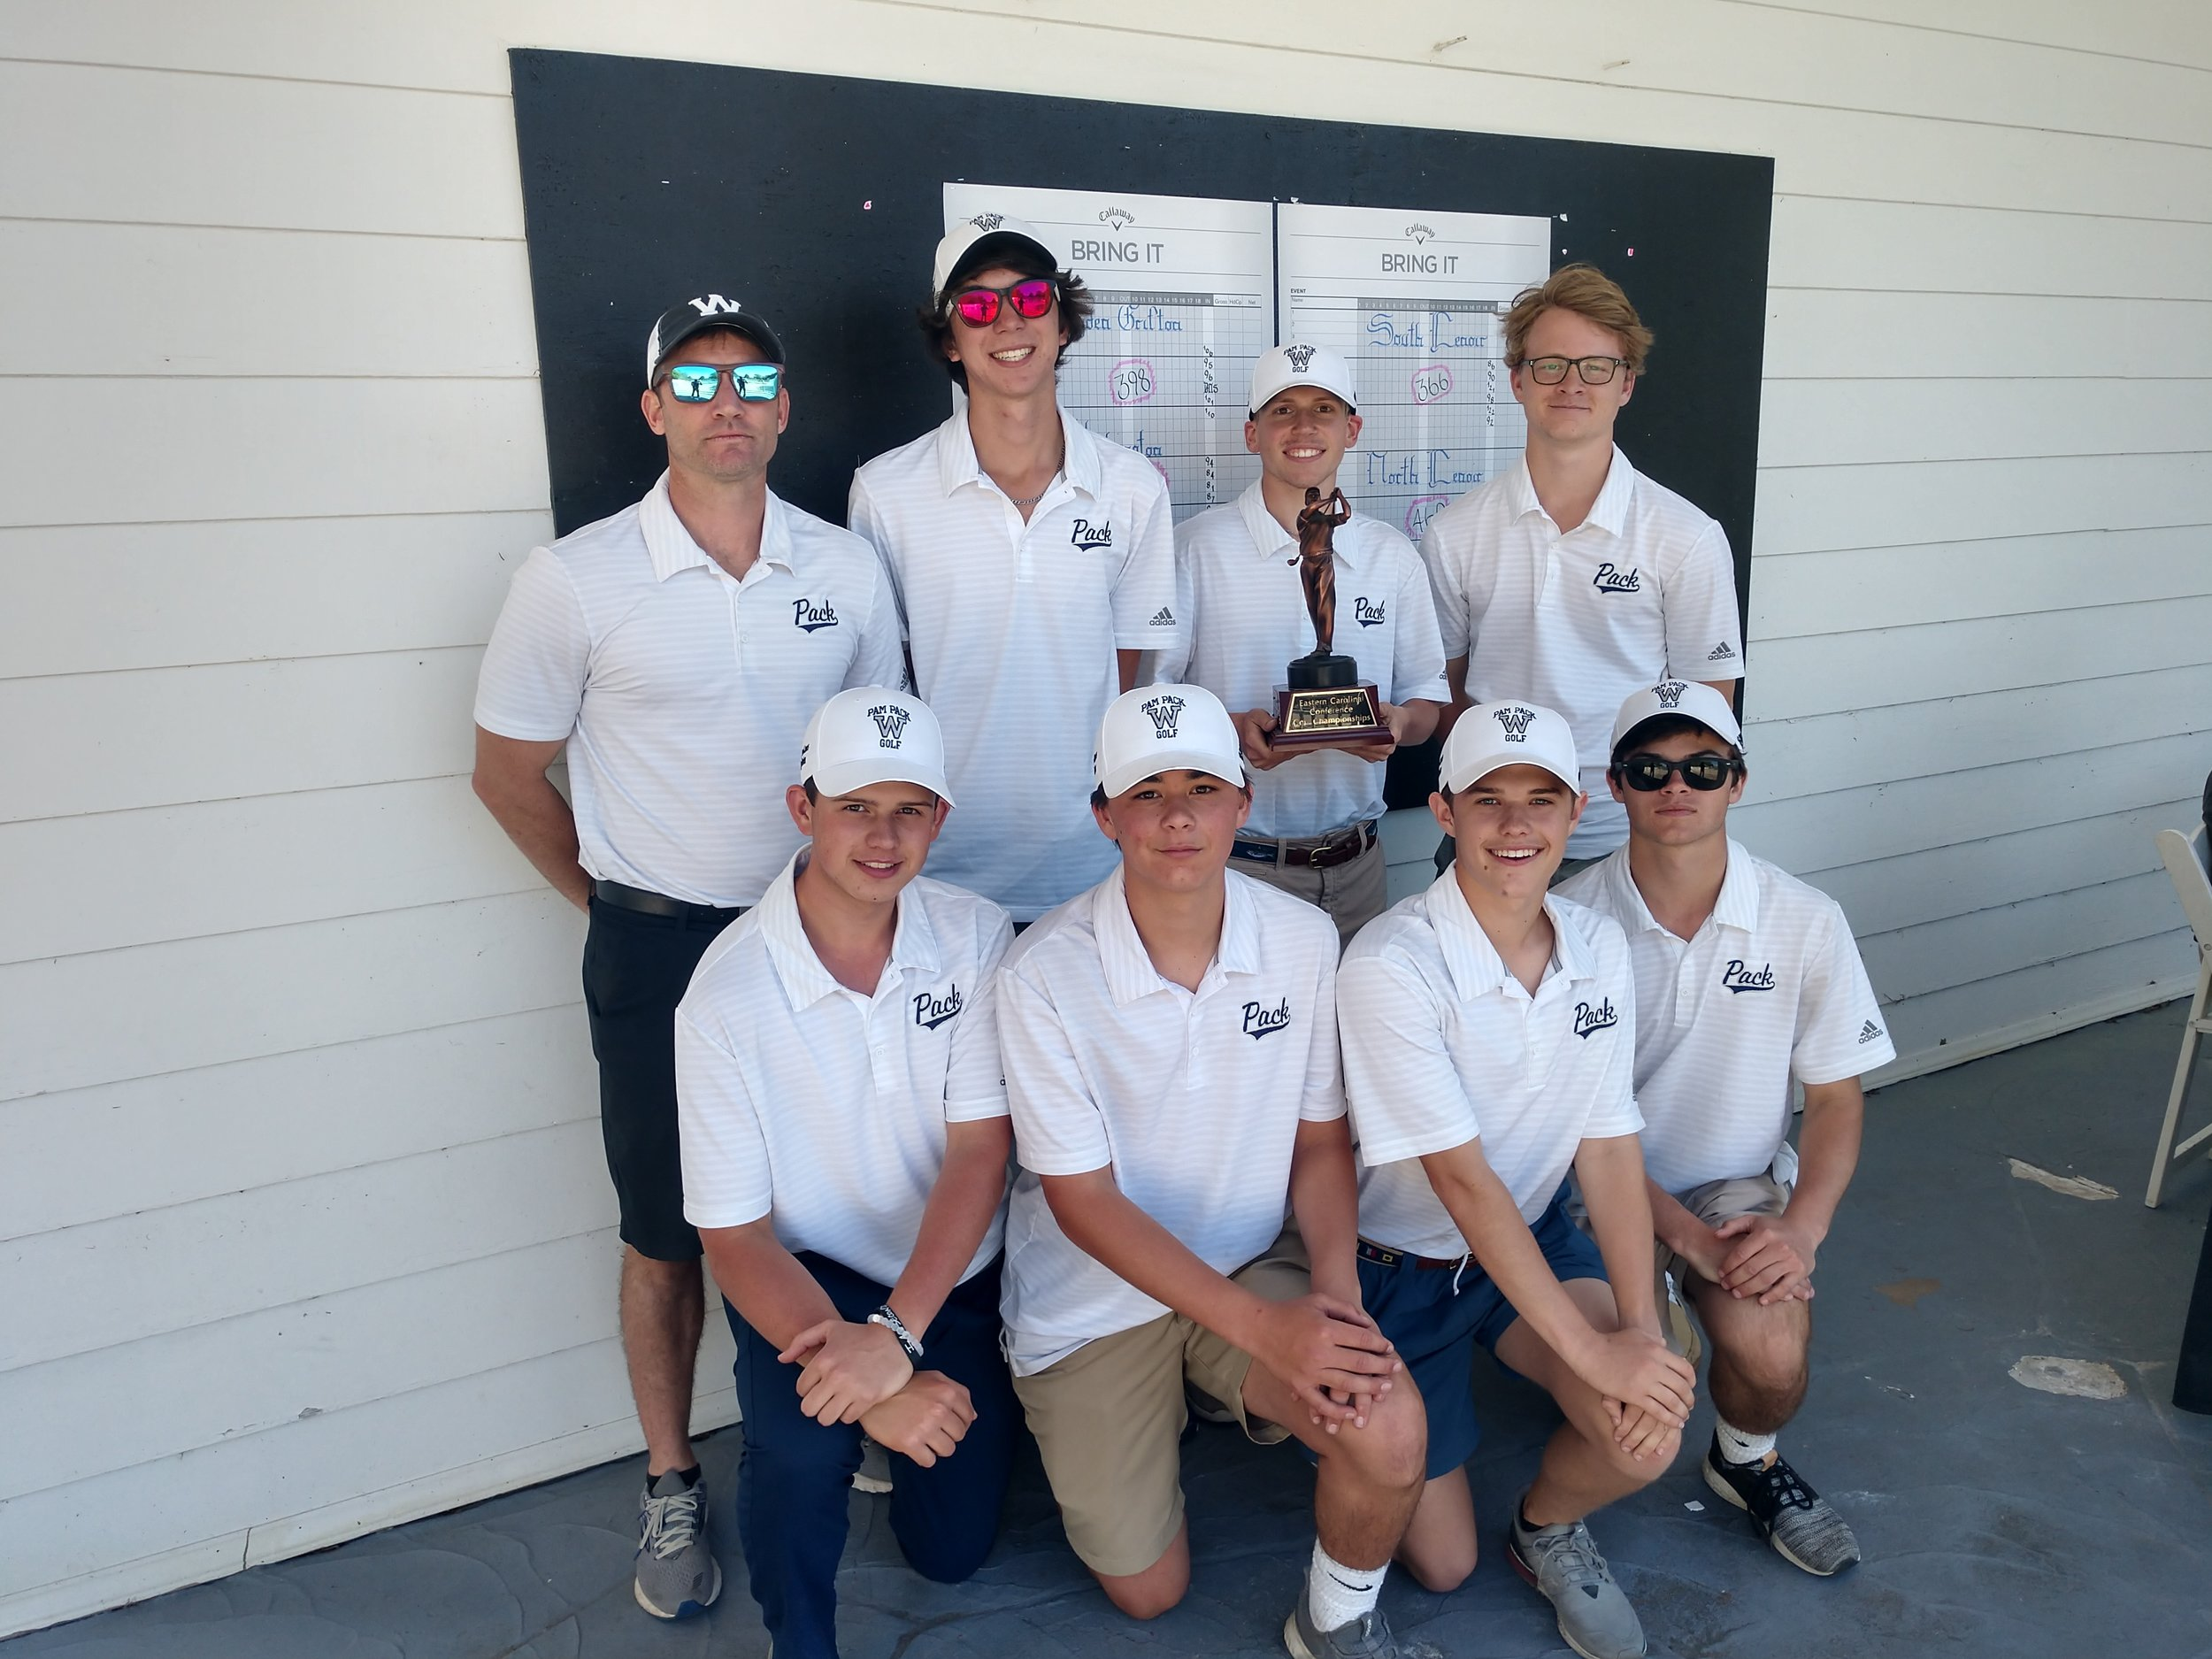 Washington won the ECC Golf Championship Monday at Kinston Country Club. The team consists of, front row from left: John Heasley, Gray West, Tucker Davis, Graham Parker; back row from left: Coach Jimmy Kozuch, Jackson Cournoyer, Jackson Paul and Patrick Lovenburg. Photo by Junious Smith III / Neuse News